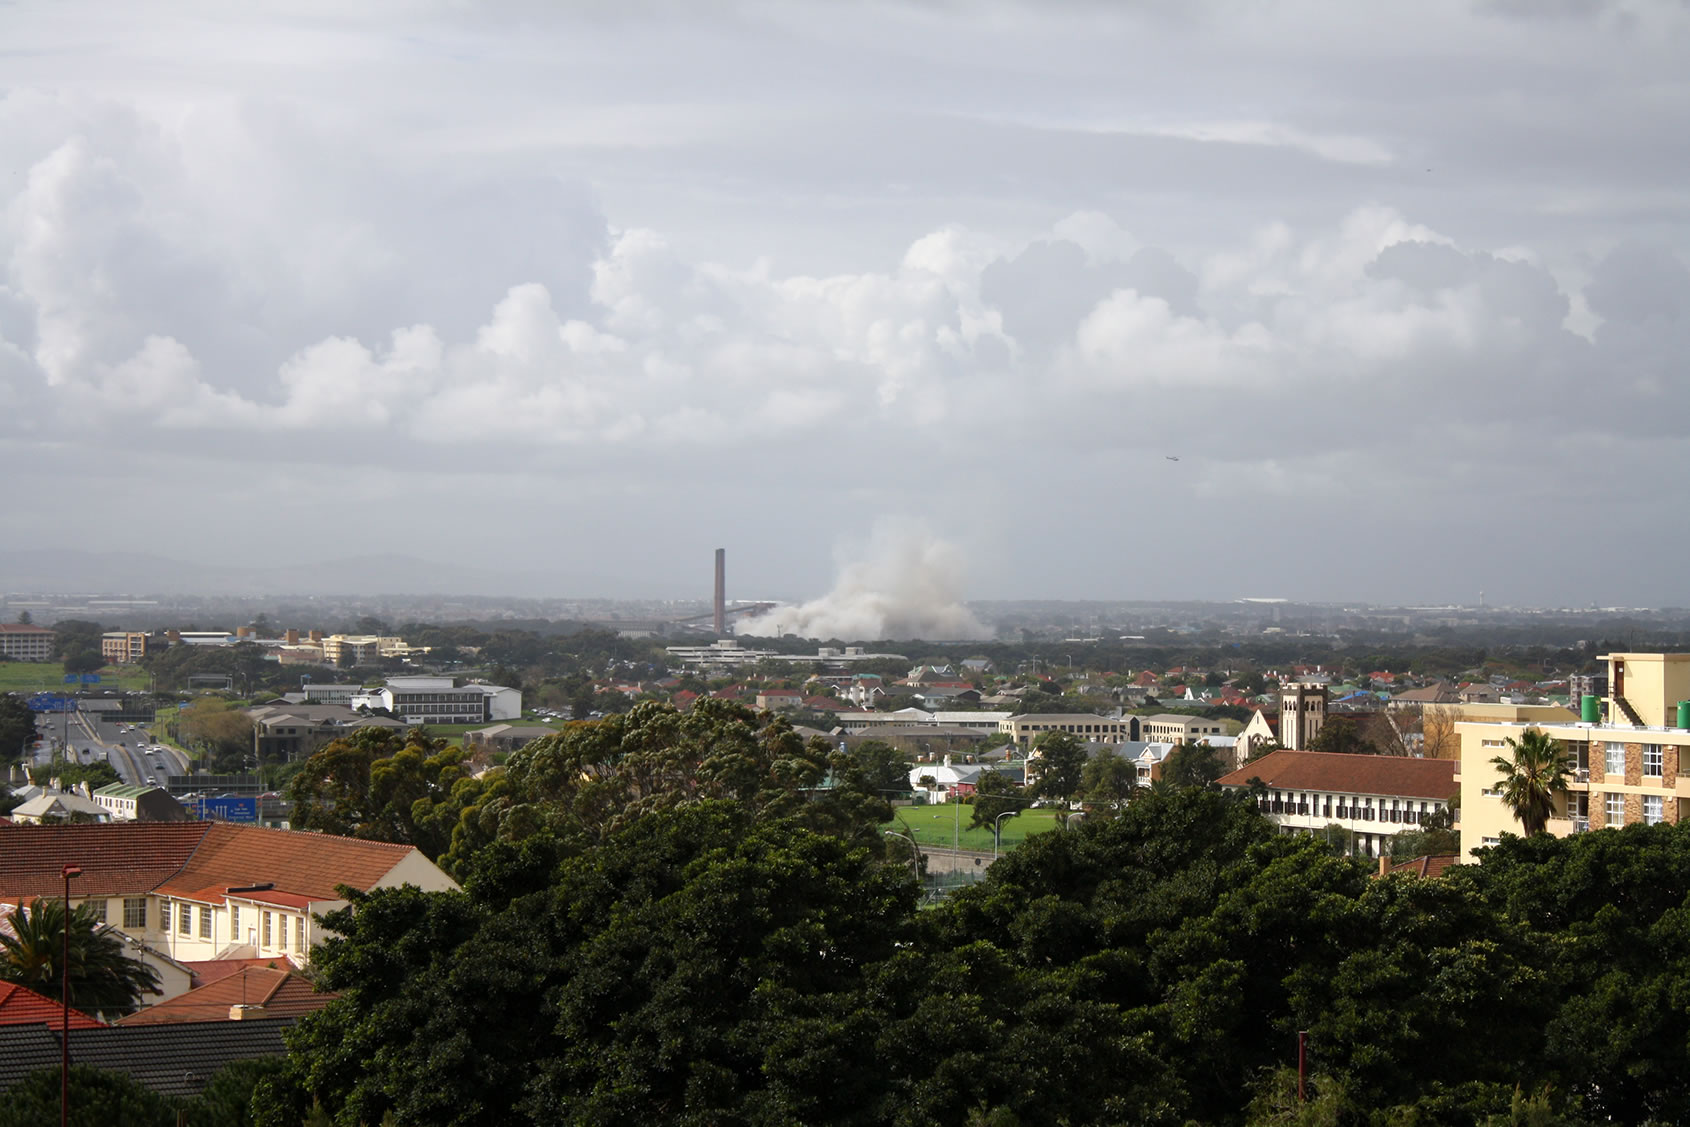 Datei:Athlone, Cape Town, just after the demolition of the Athlone Cooling Towers